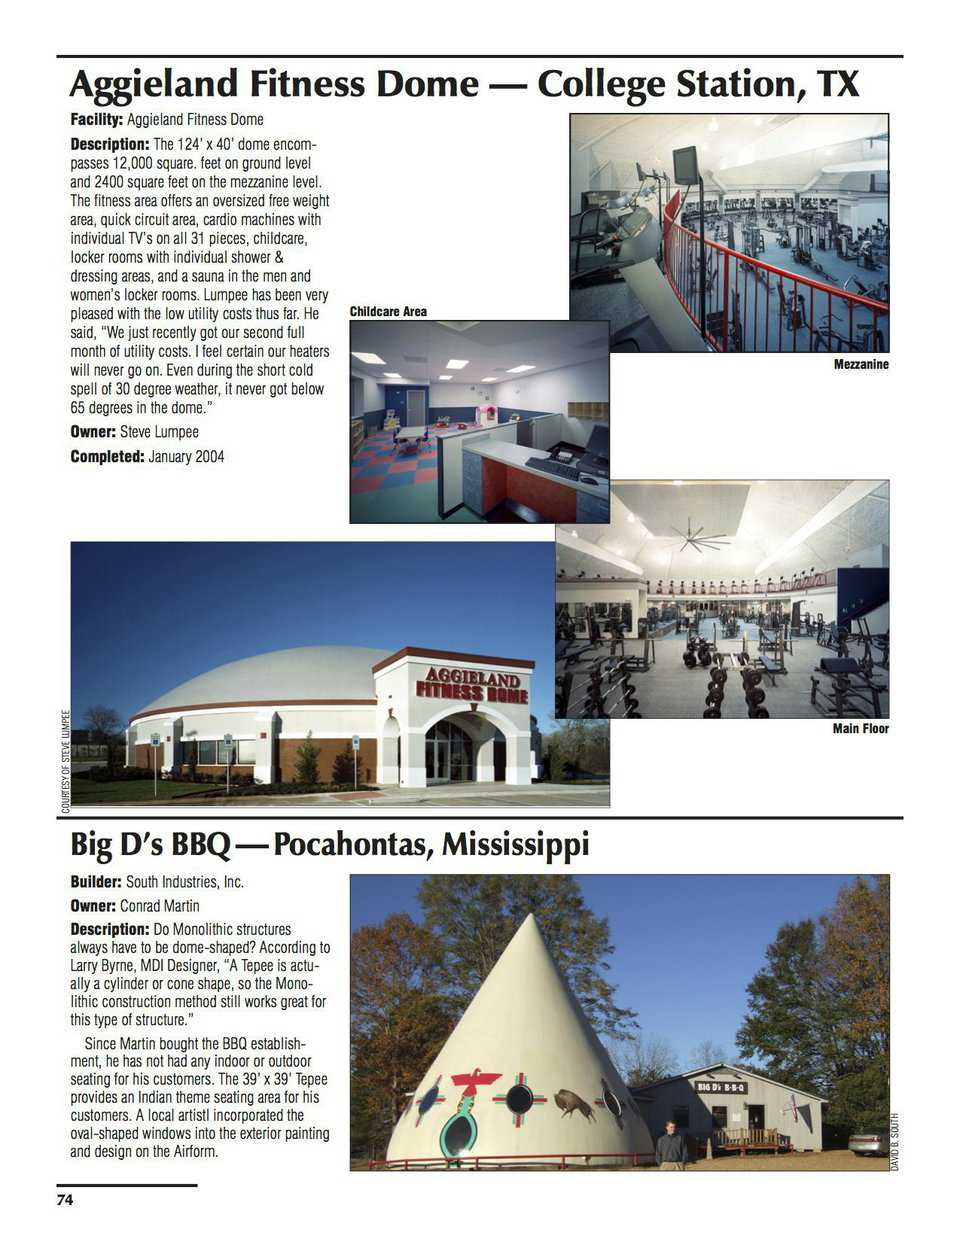 Sample pages – Aggieland Fitness Dome, College Station, Texas